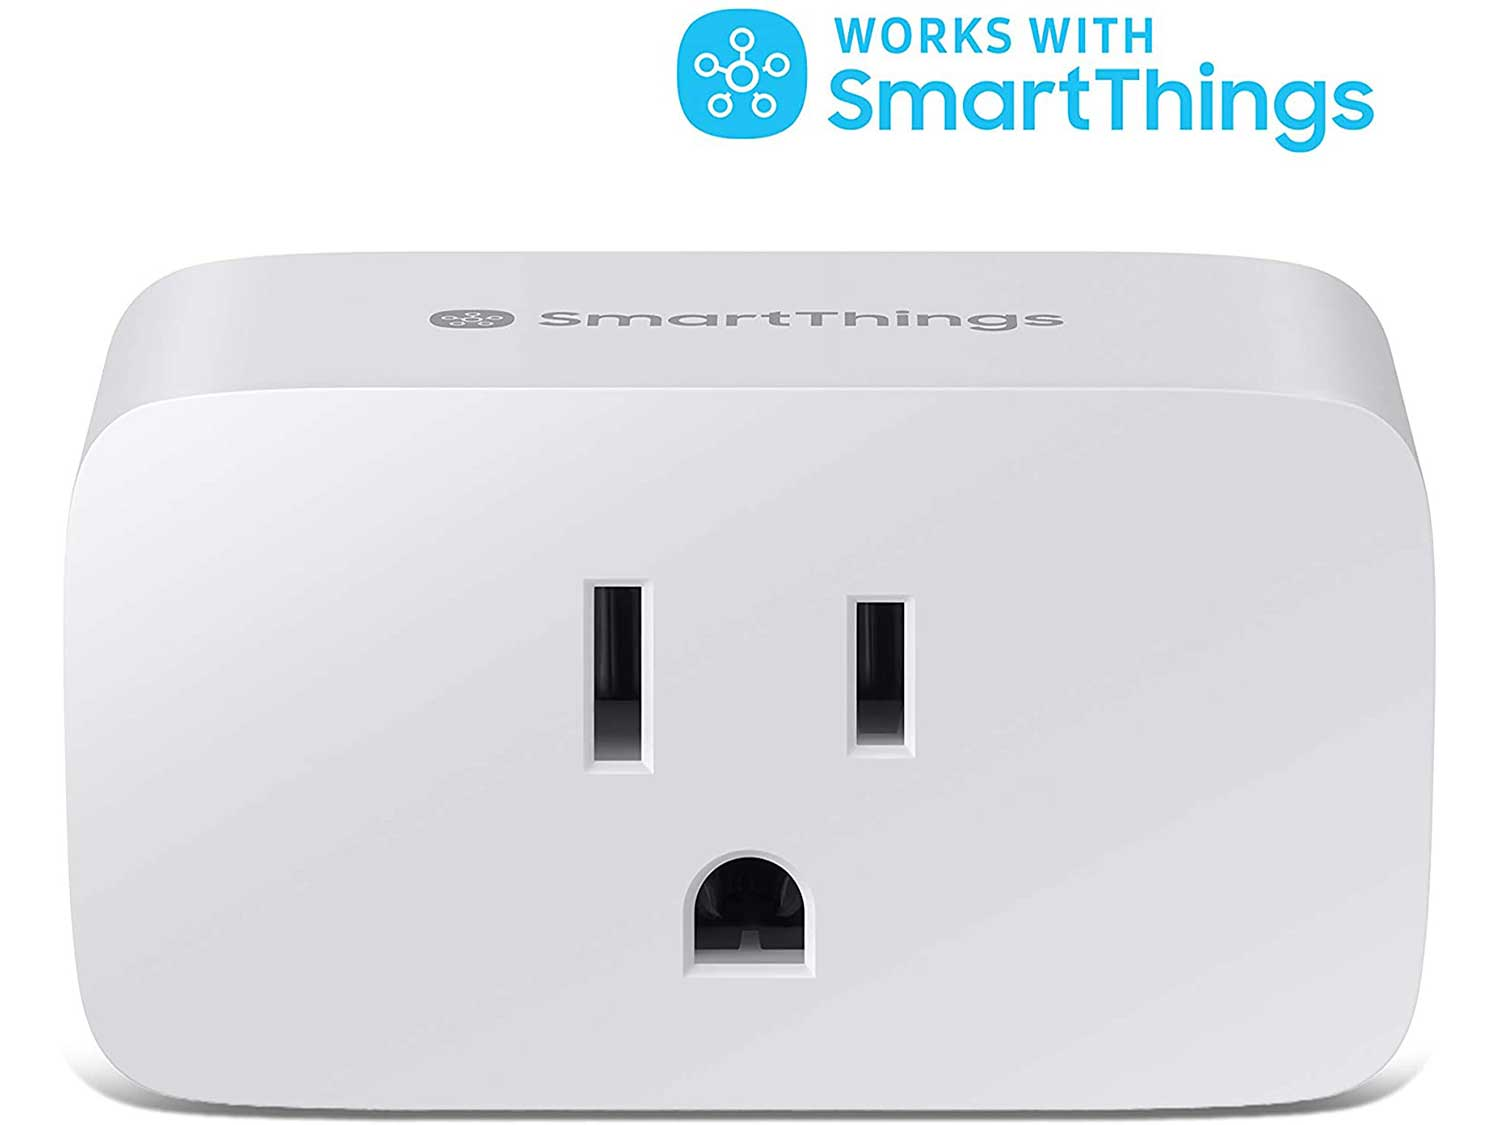 SAMSUNG SmartThings WiFi Plug In Outlet for Smart Home   Control Connected Devices, Monitor Energy Usage, Operate with Voice Commands, No Hub Required   White